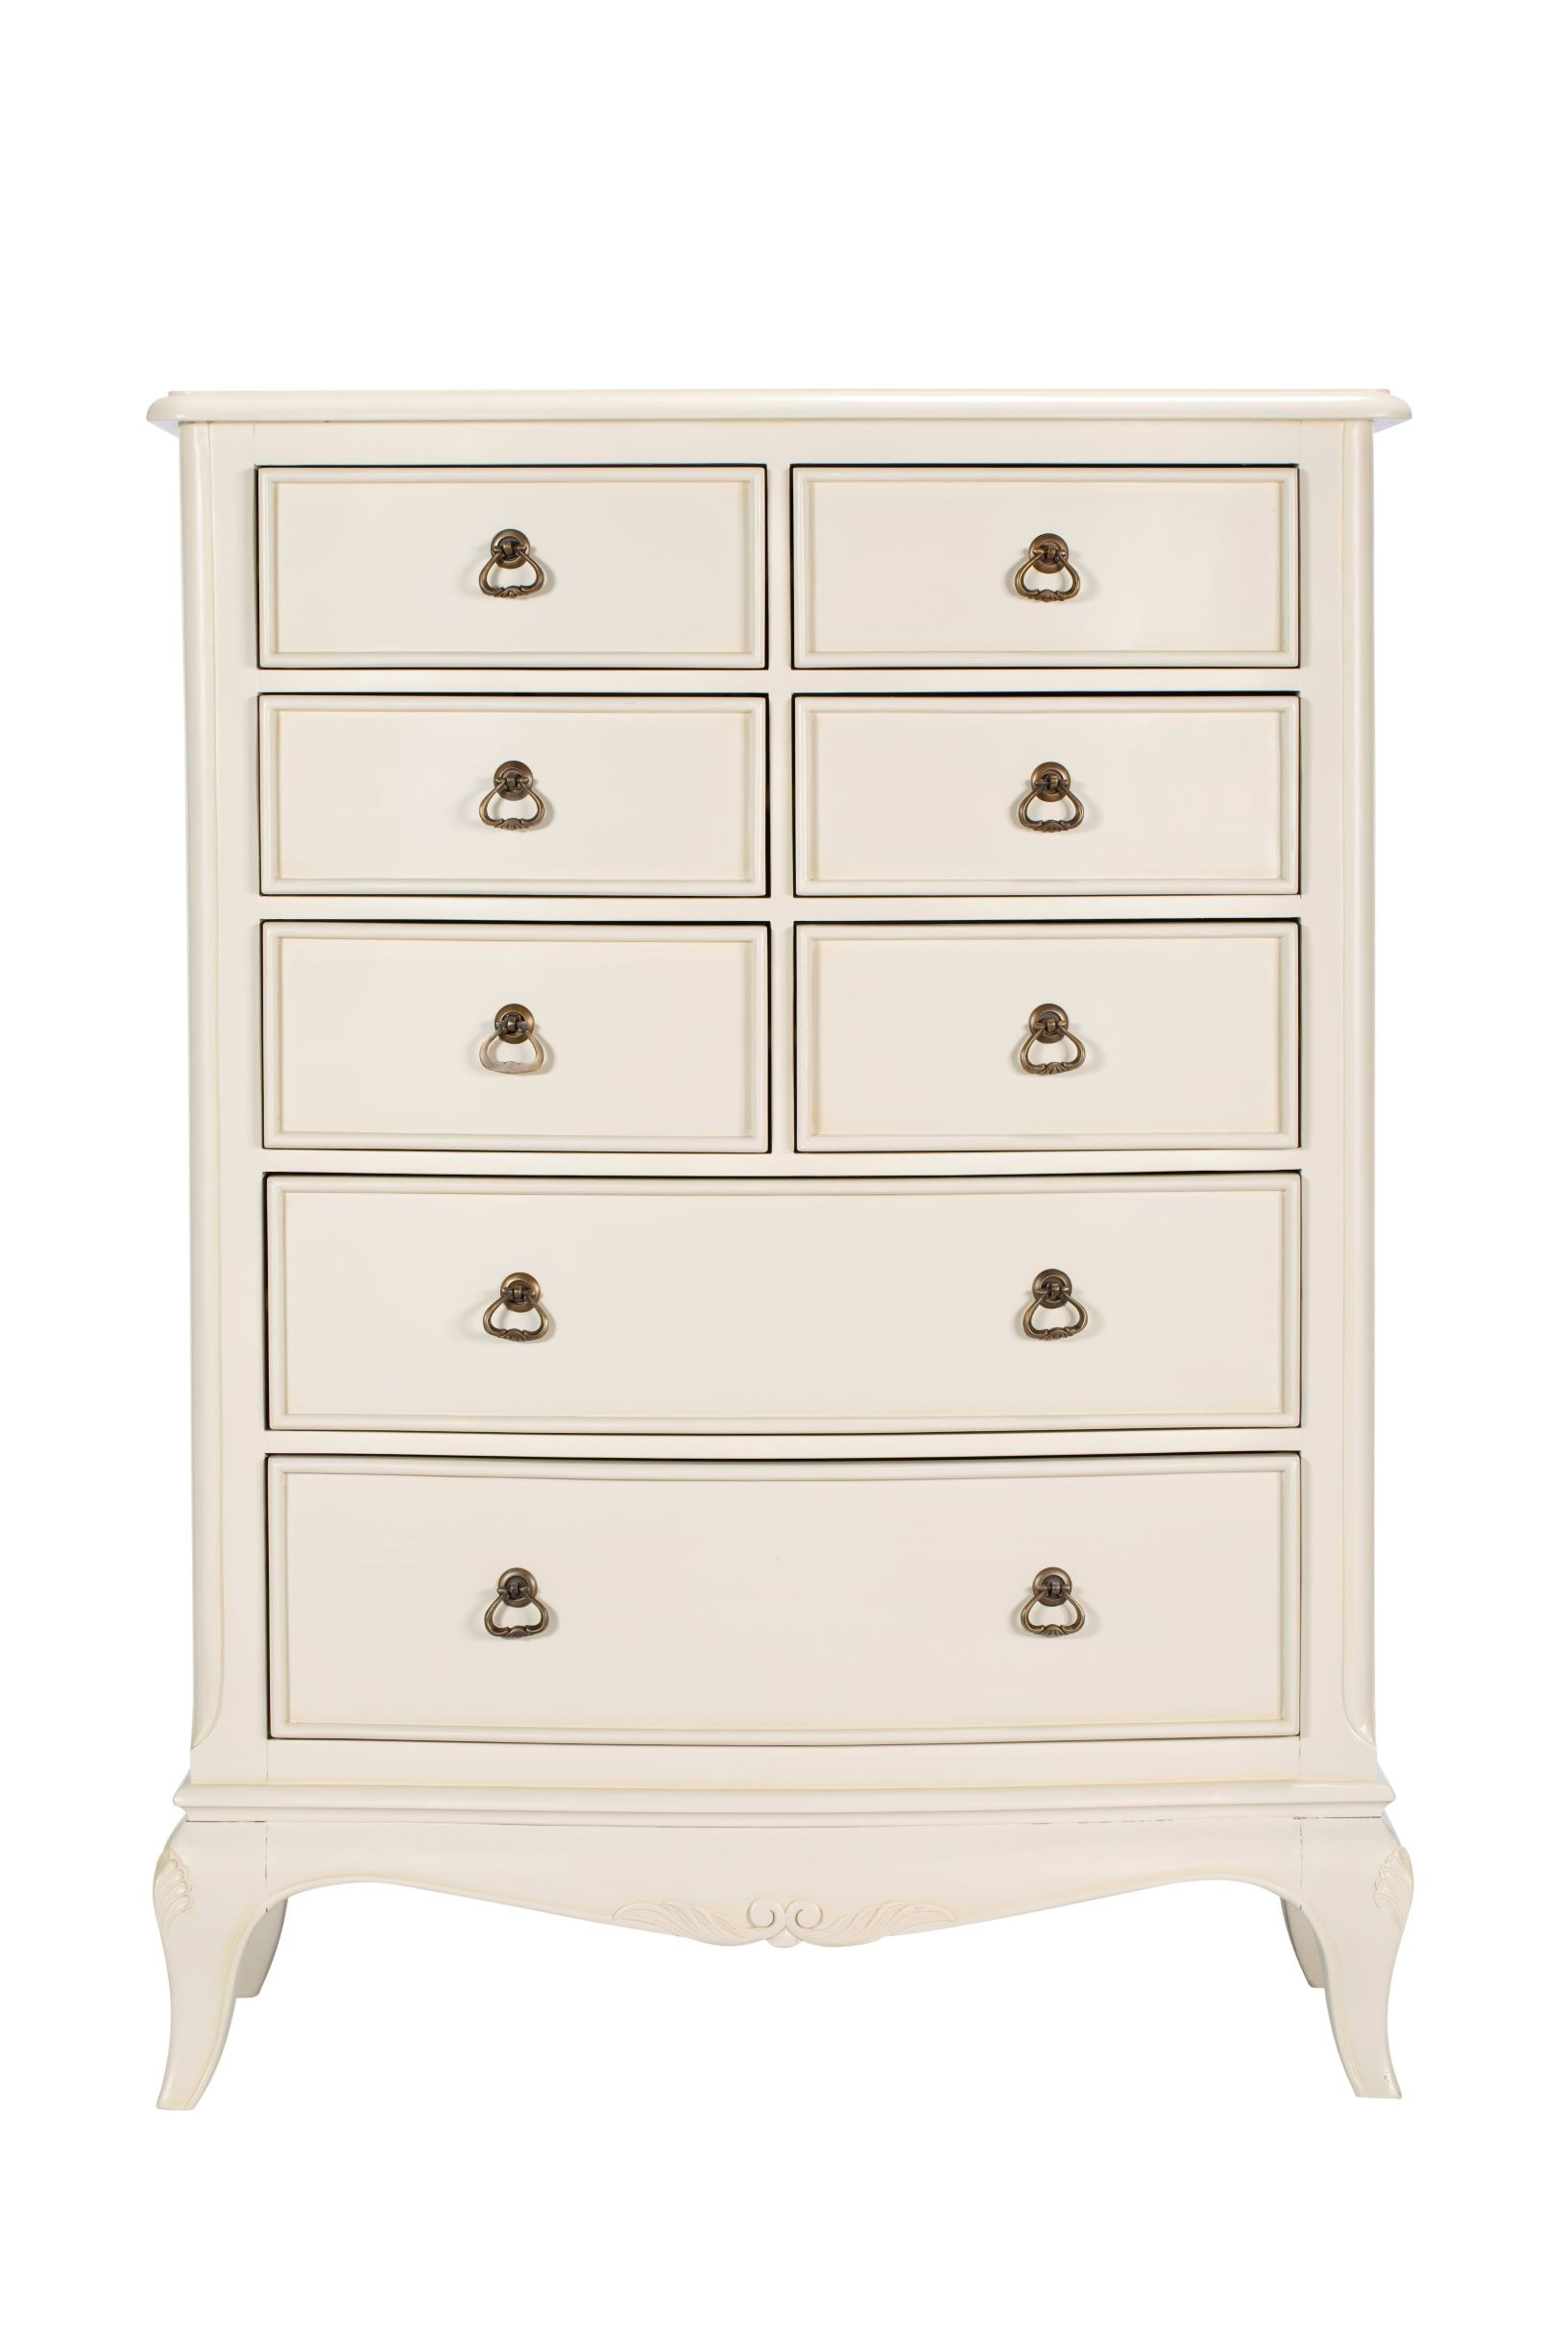 CHATEAU TALL CHEST - L88cm x D50cm x H119cm